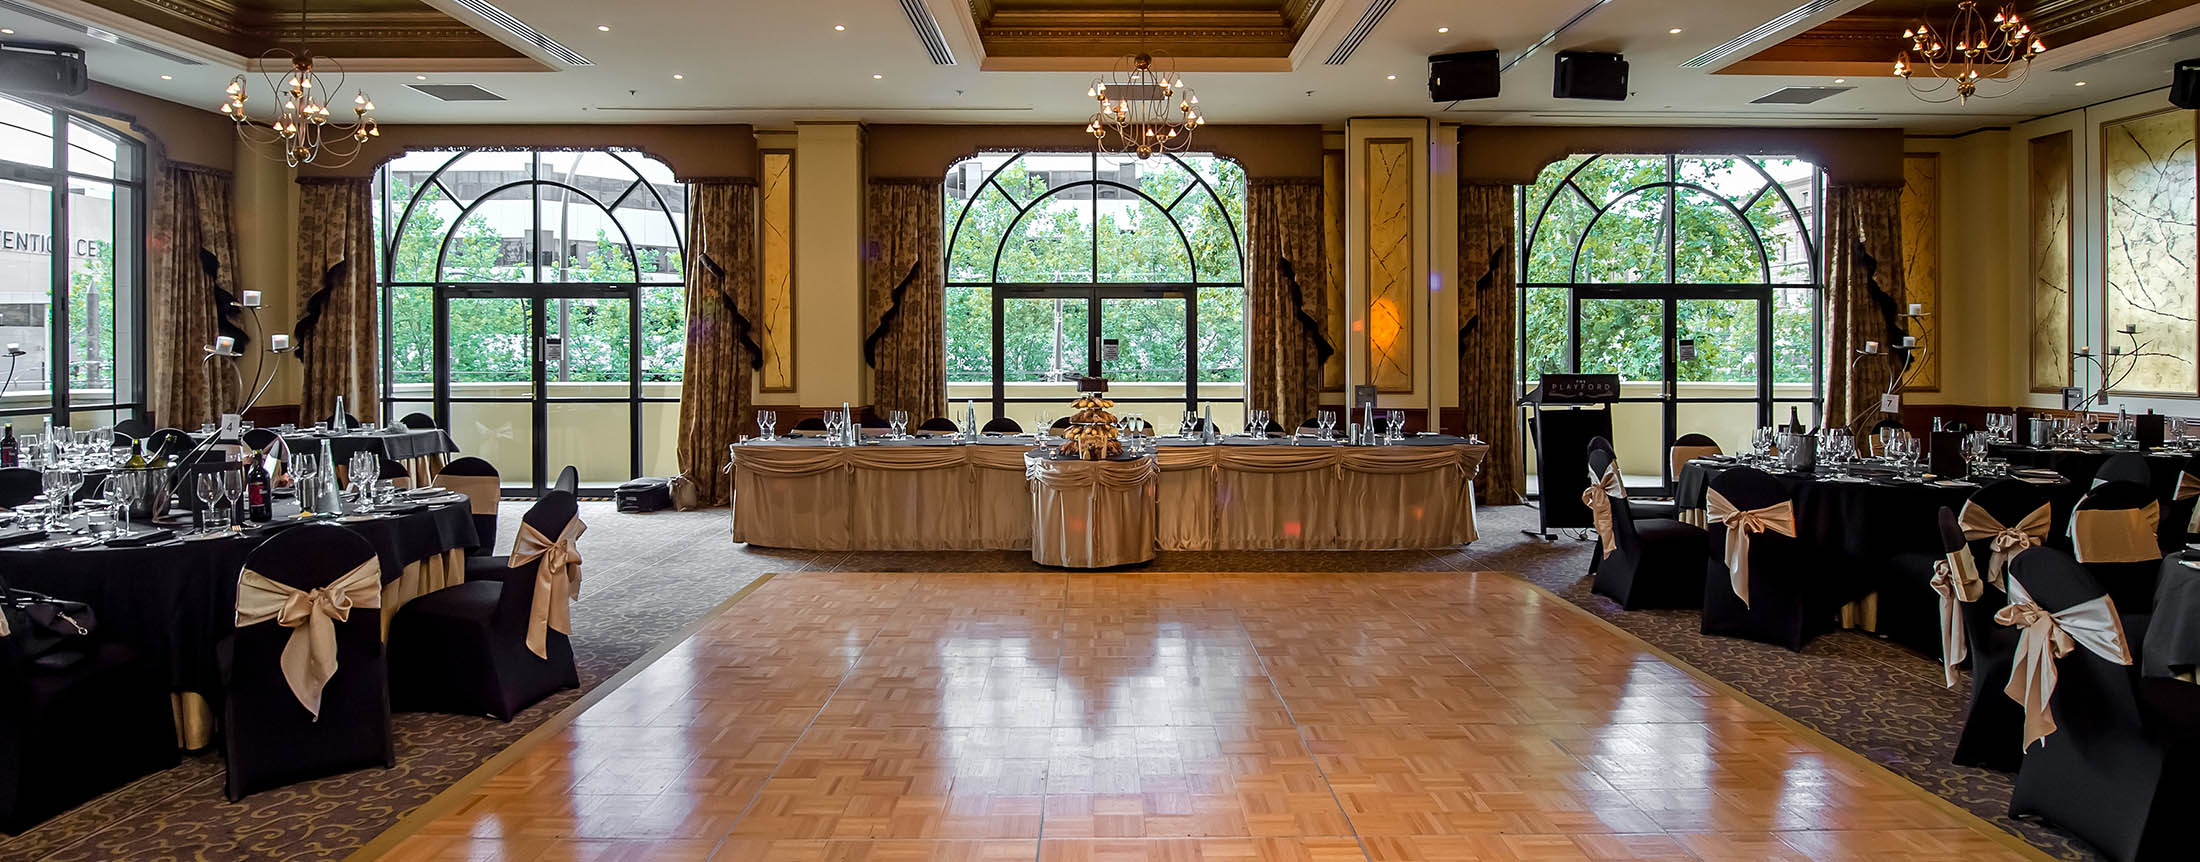 Wedding venue adelaide weddings the playford hotel junglespirit Image collections